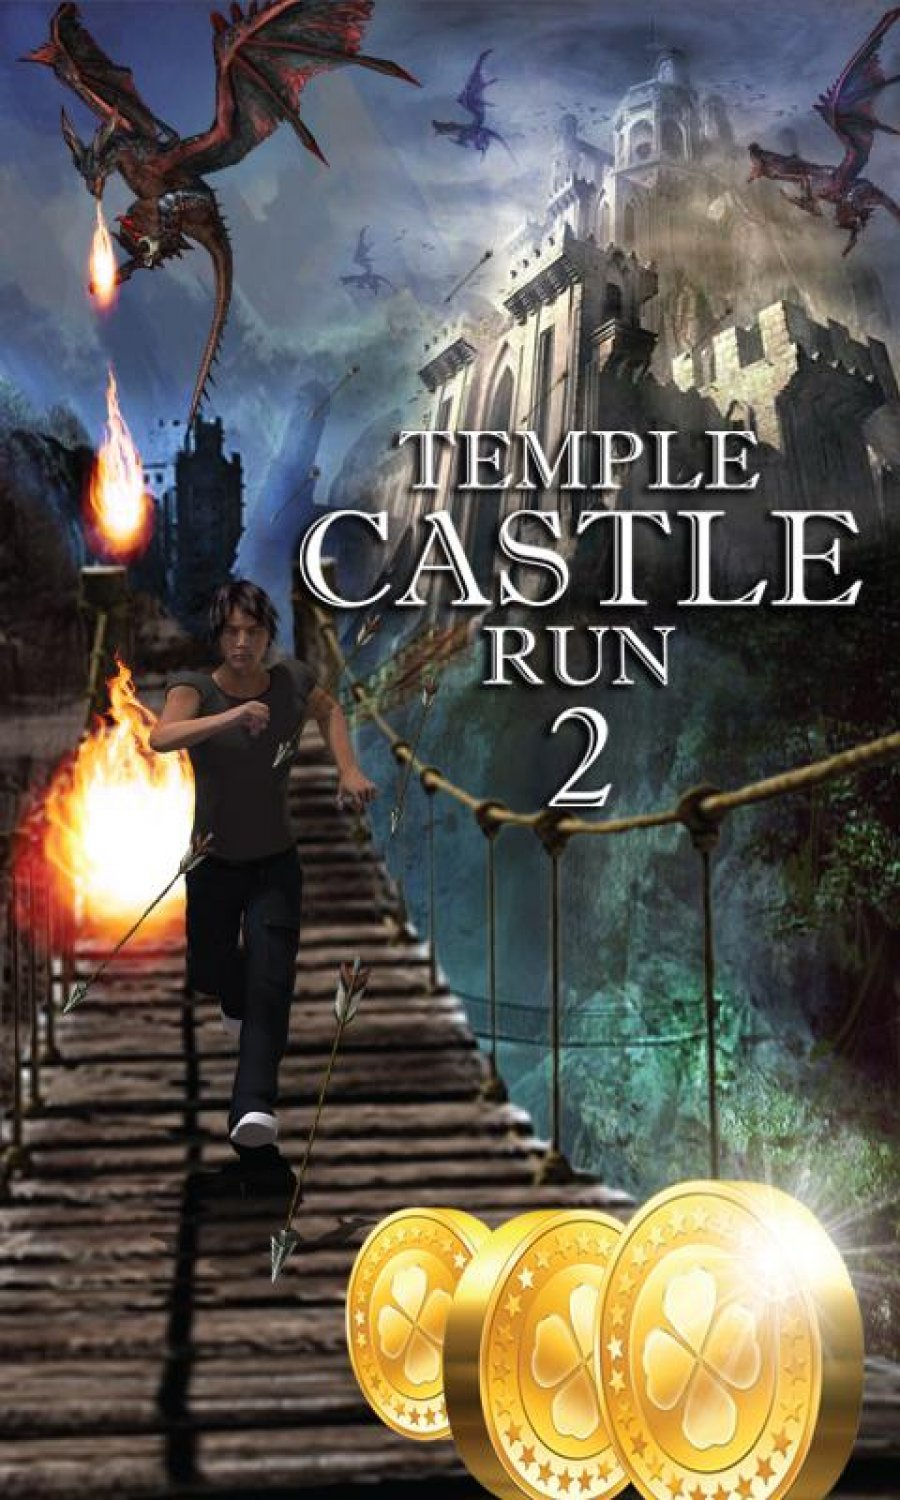 Temple Castle Run 2